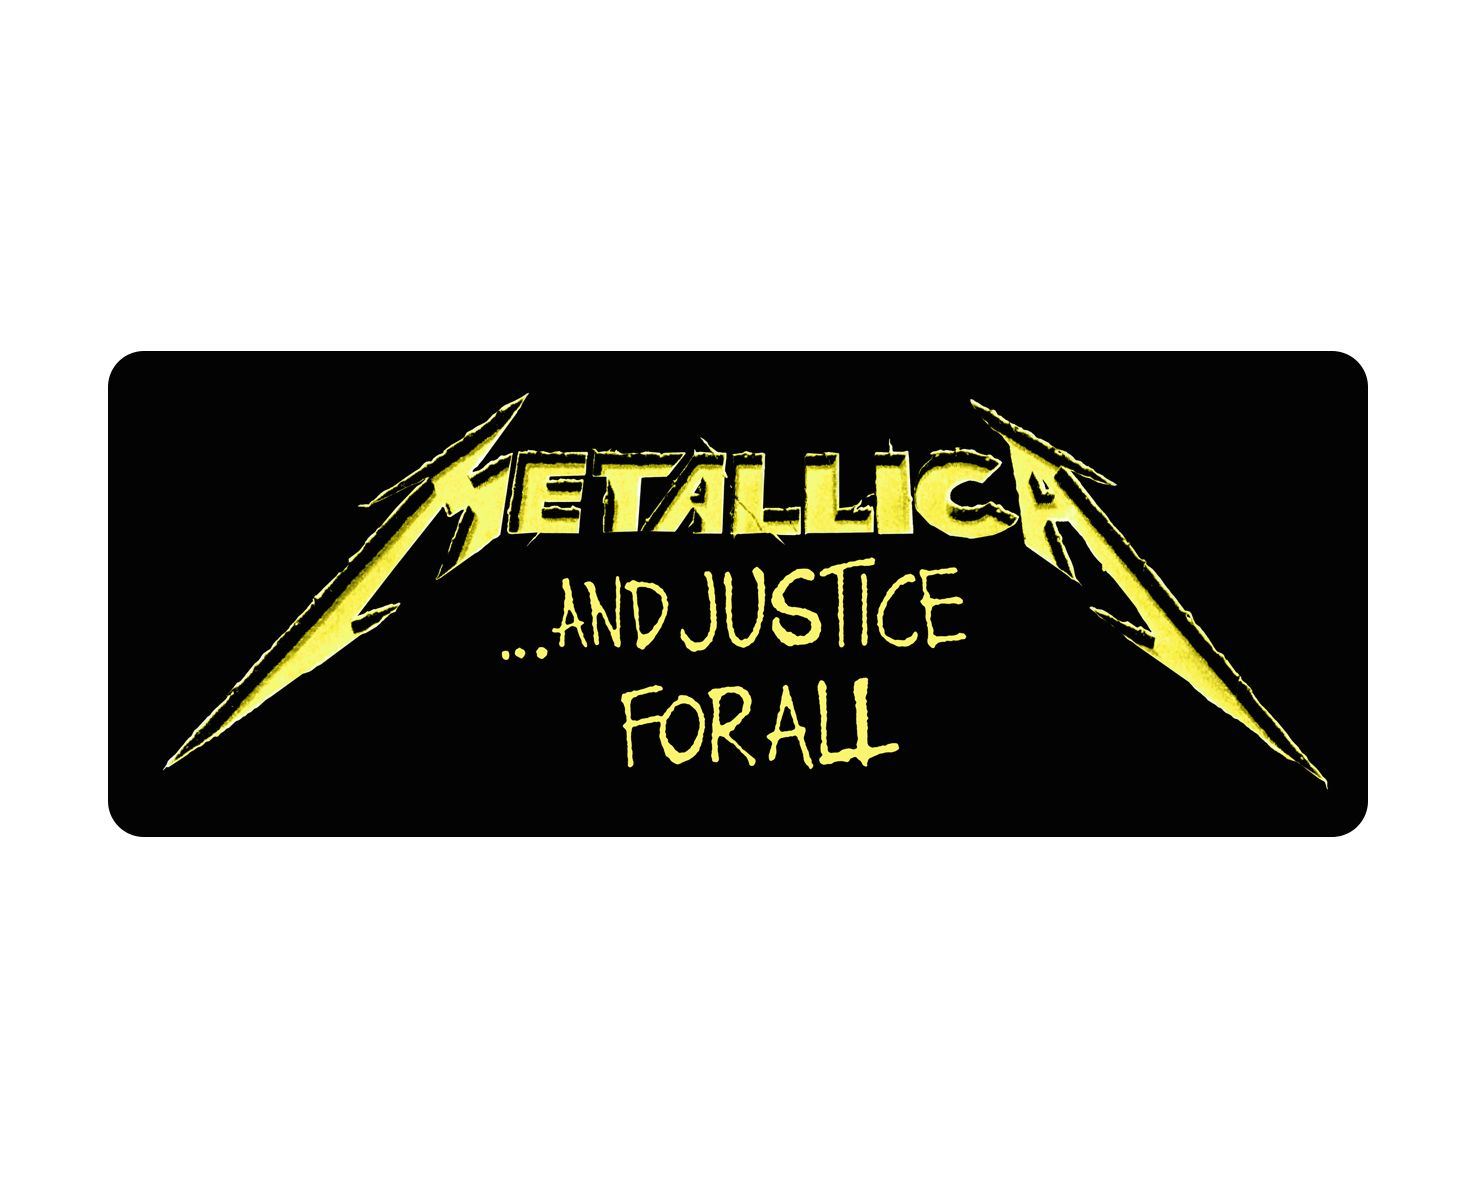 Metallica - ...And Justice for All [Adesivo]